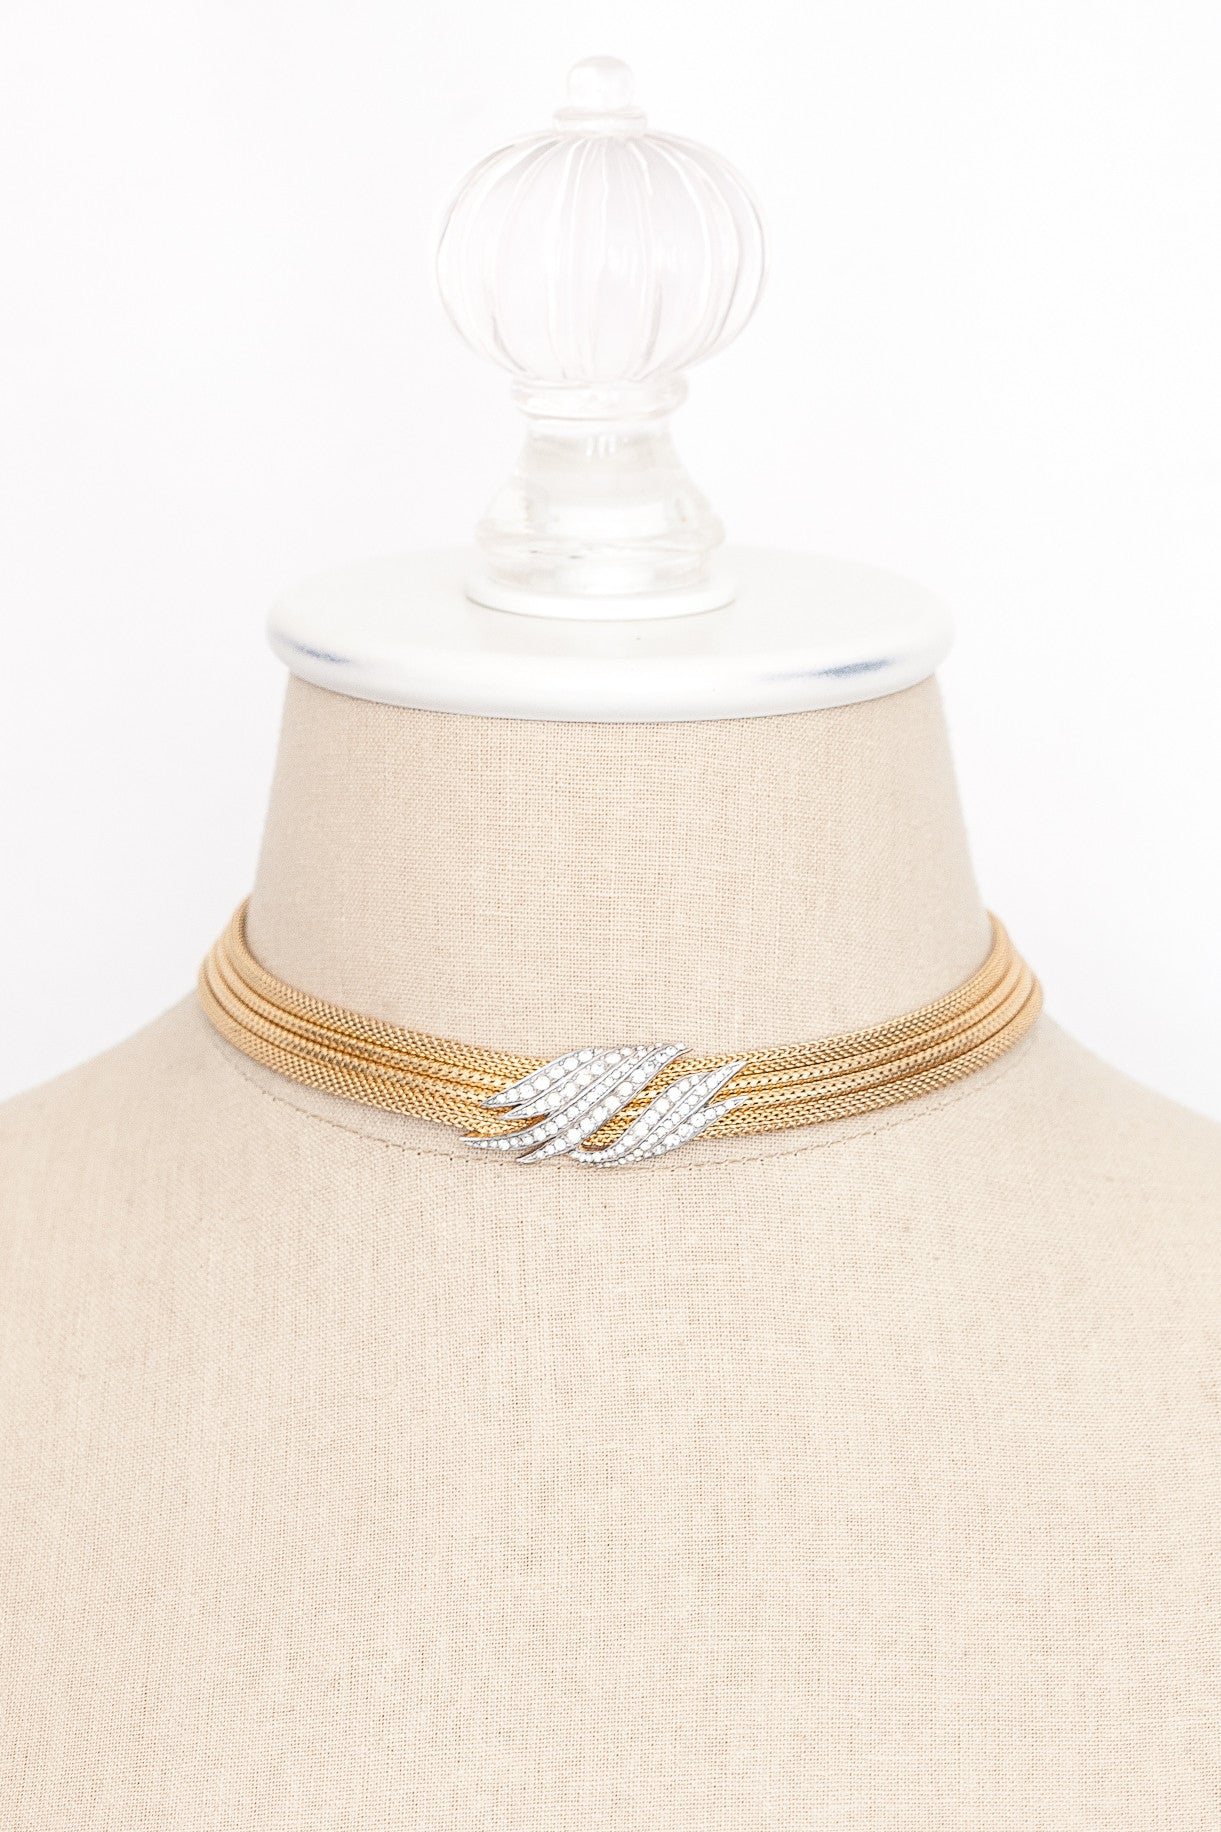 50's__Trifari__Choker Statement Necklace